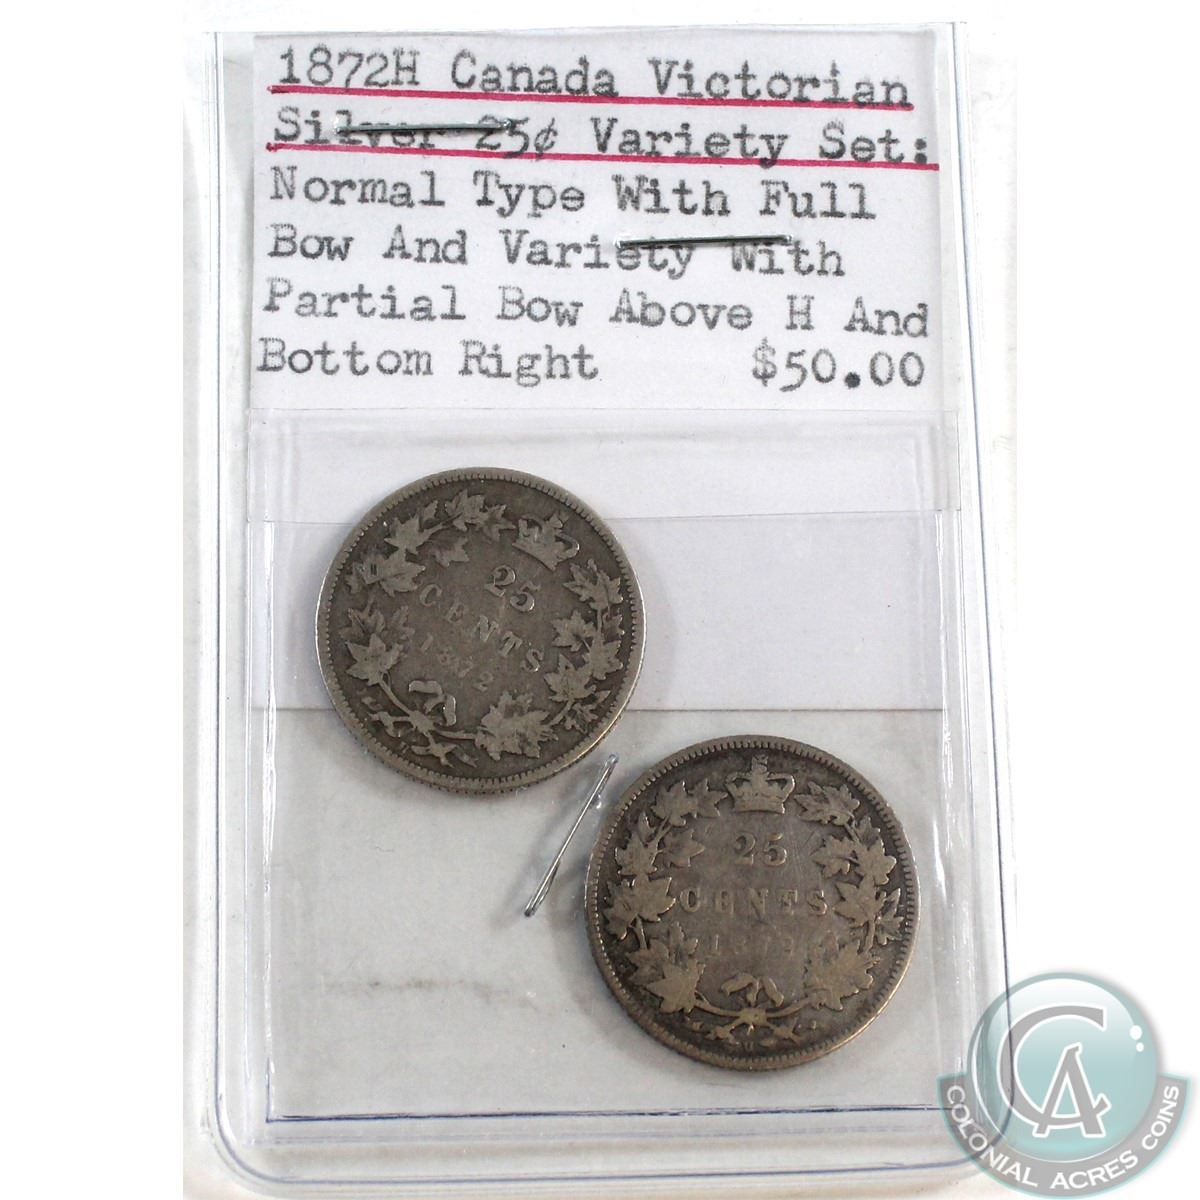 1872H Canada Victorian Silver 25-cent Variety Set: Normal